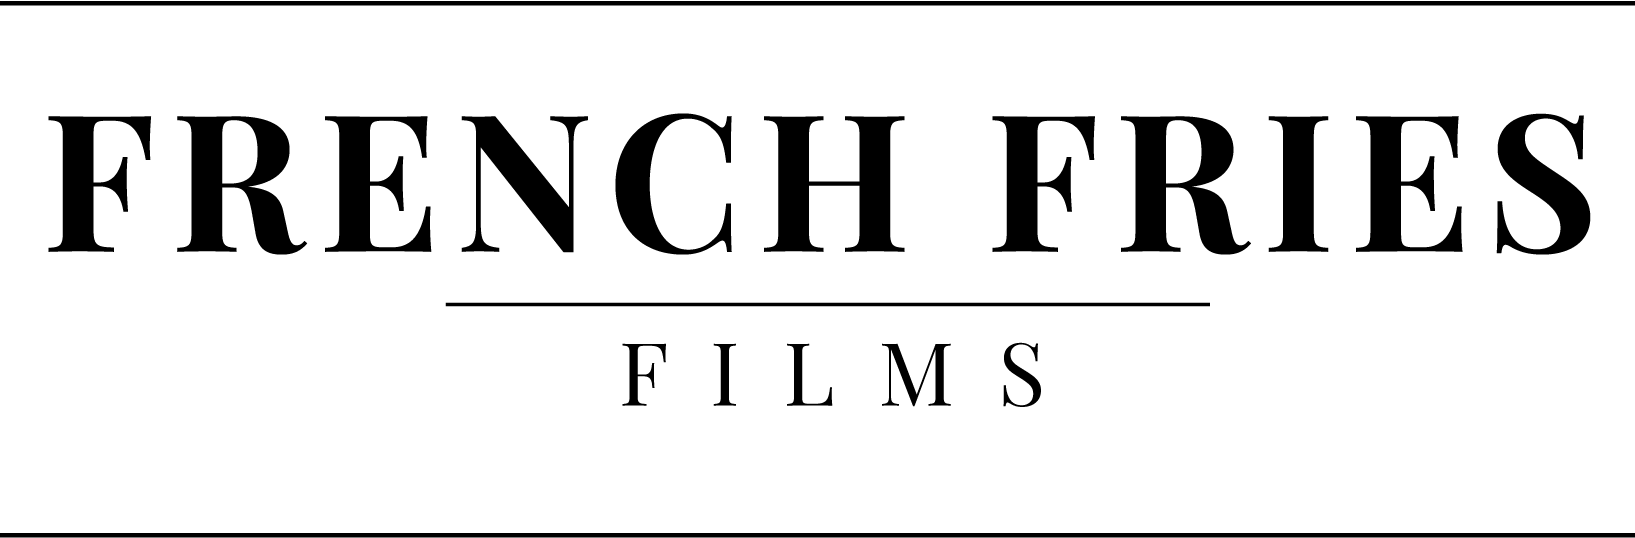 French Fries Films